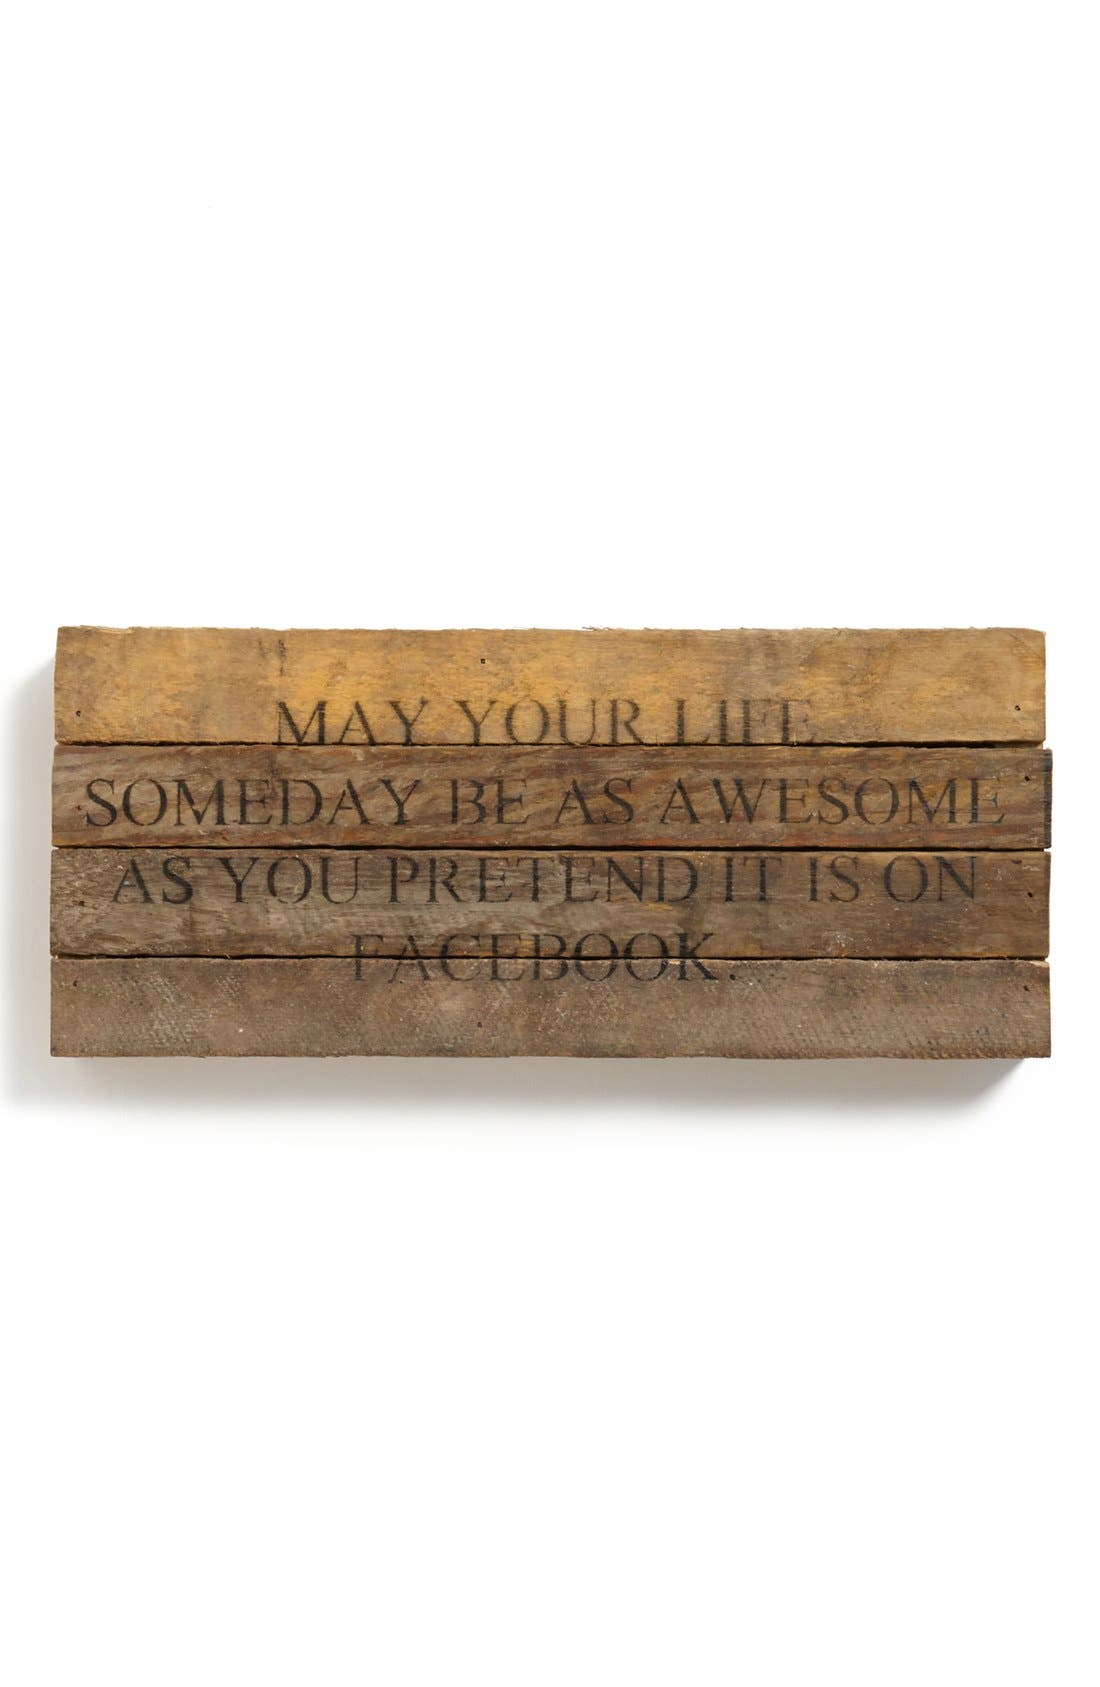 Alternate Image 1 Selected - Second Nature By Hand 'May Your Life' Repurposed Wood Wall Art